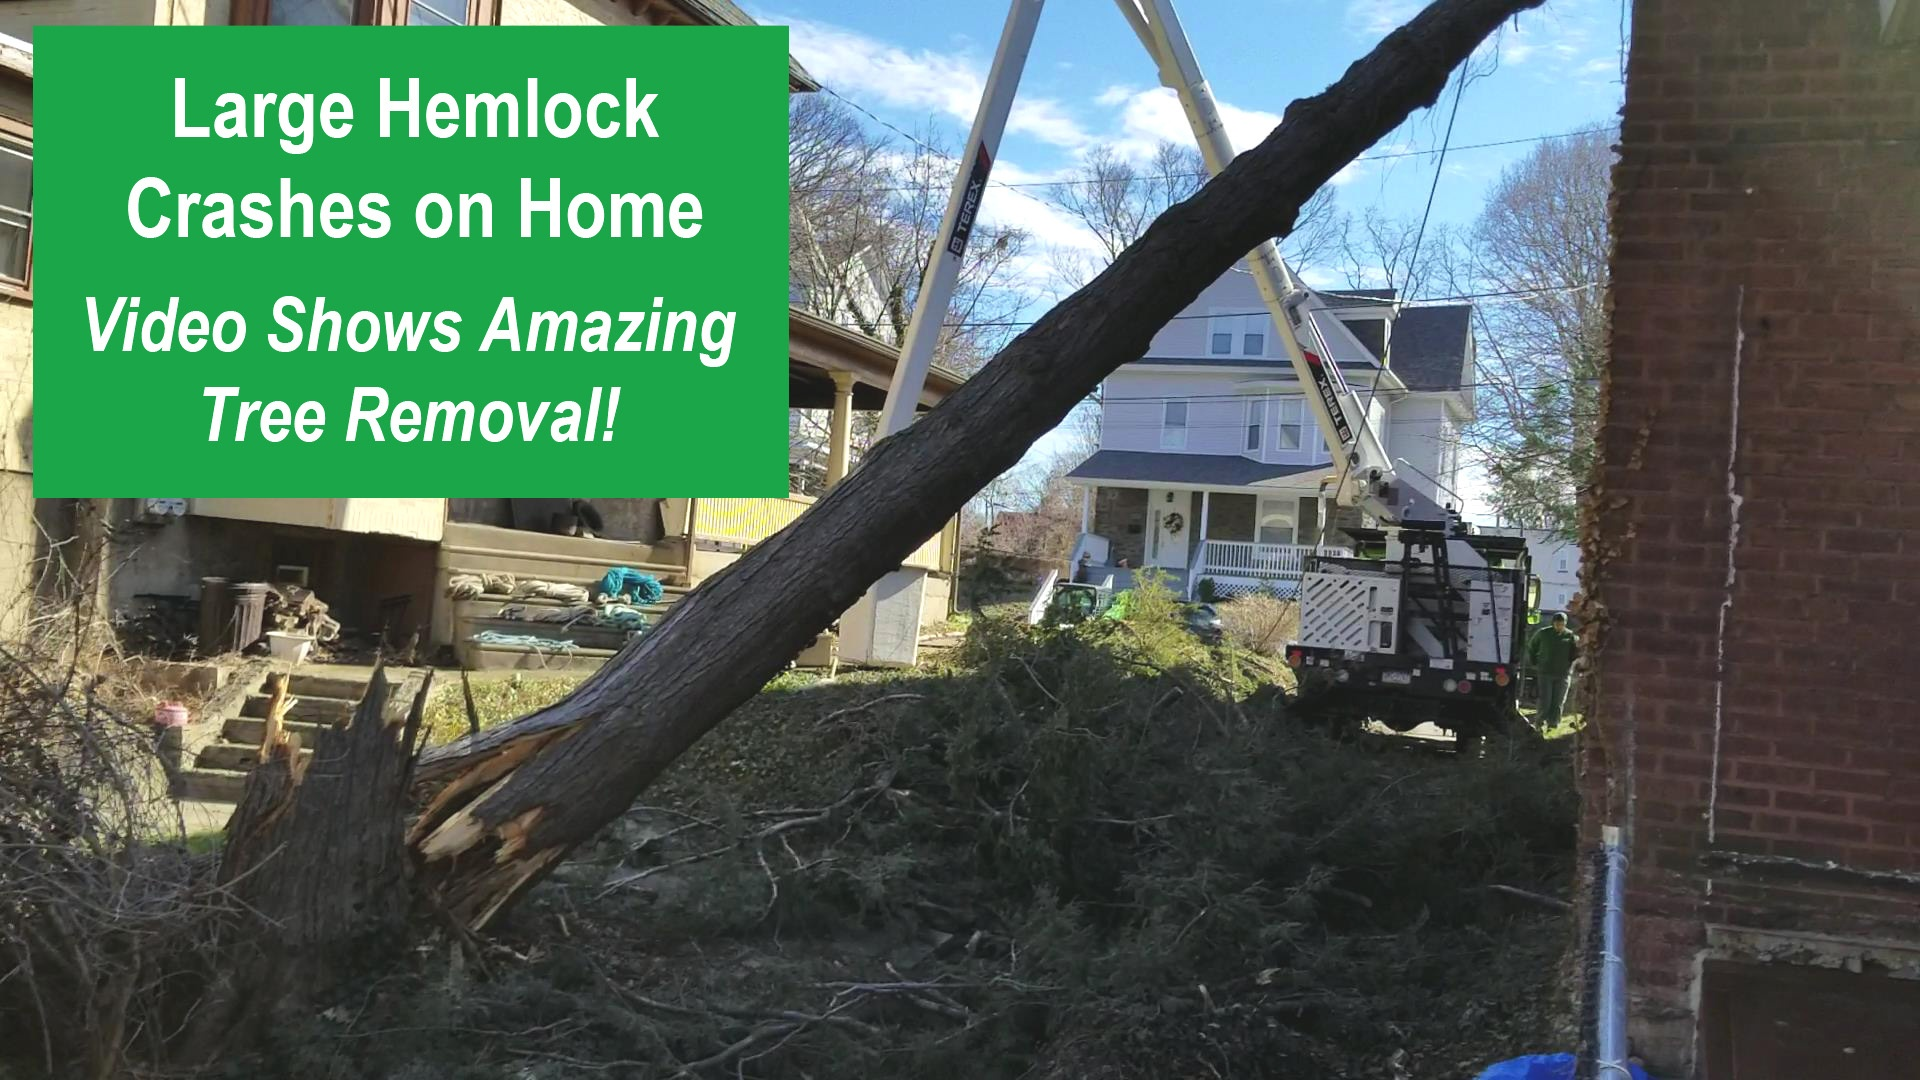 Large Hemlock Crashes Down on Home, Video Shows Amazing Tree Removal